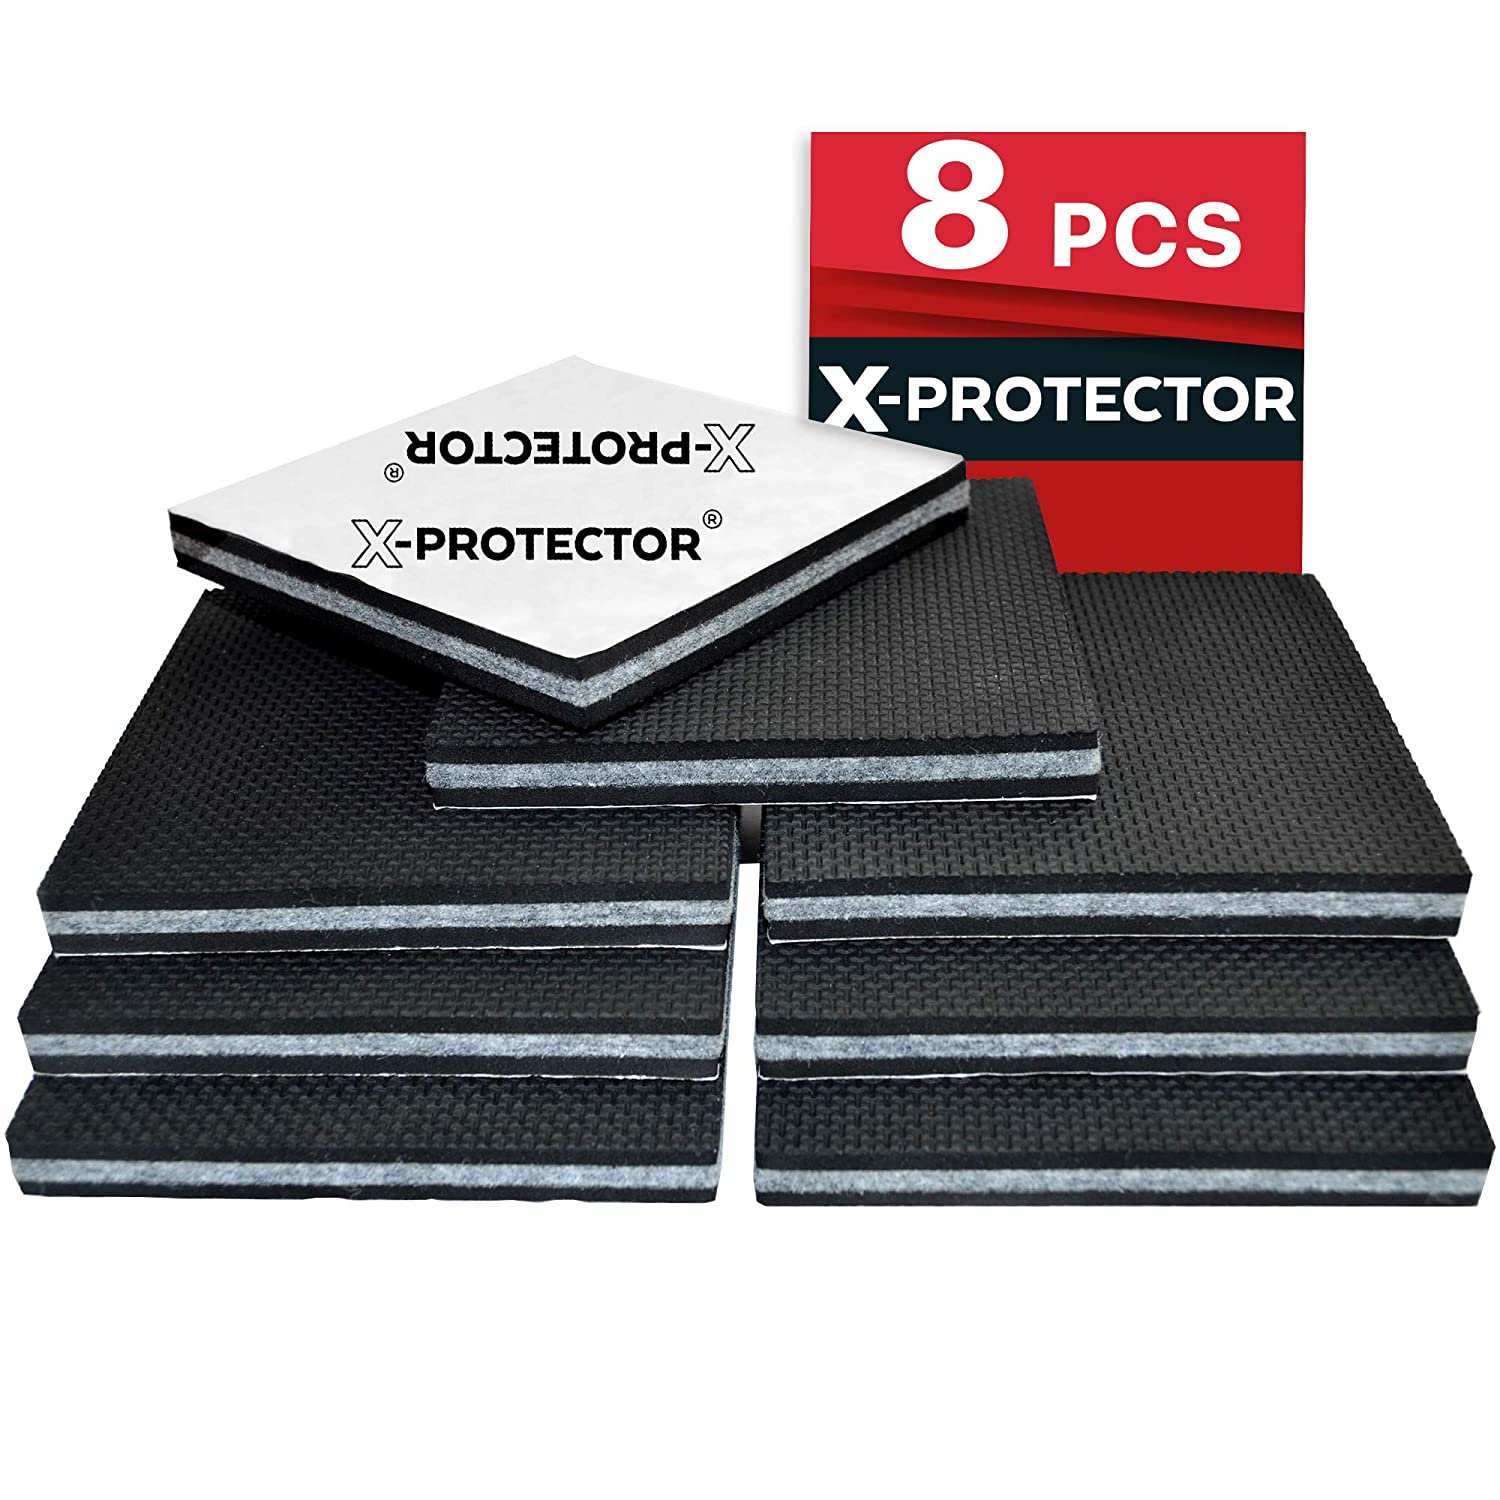 Non Slip Pads X-Protector - Floor Protector Pads - 8 pcs 100 mm Furniture Pads! Best Floor Protectors Pads - Rubber Feet – Premium Anti Slip Rubber Pads for Furniture Feet. FIX Furniture in Place! NeoSales Corp